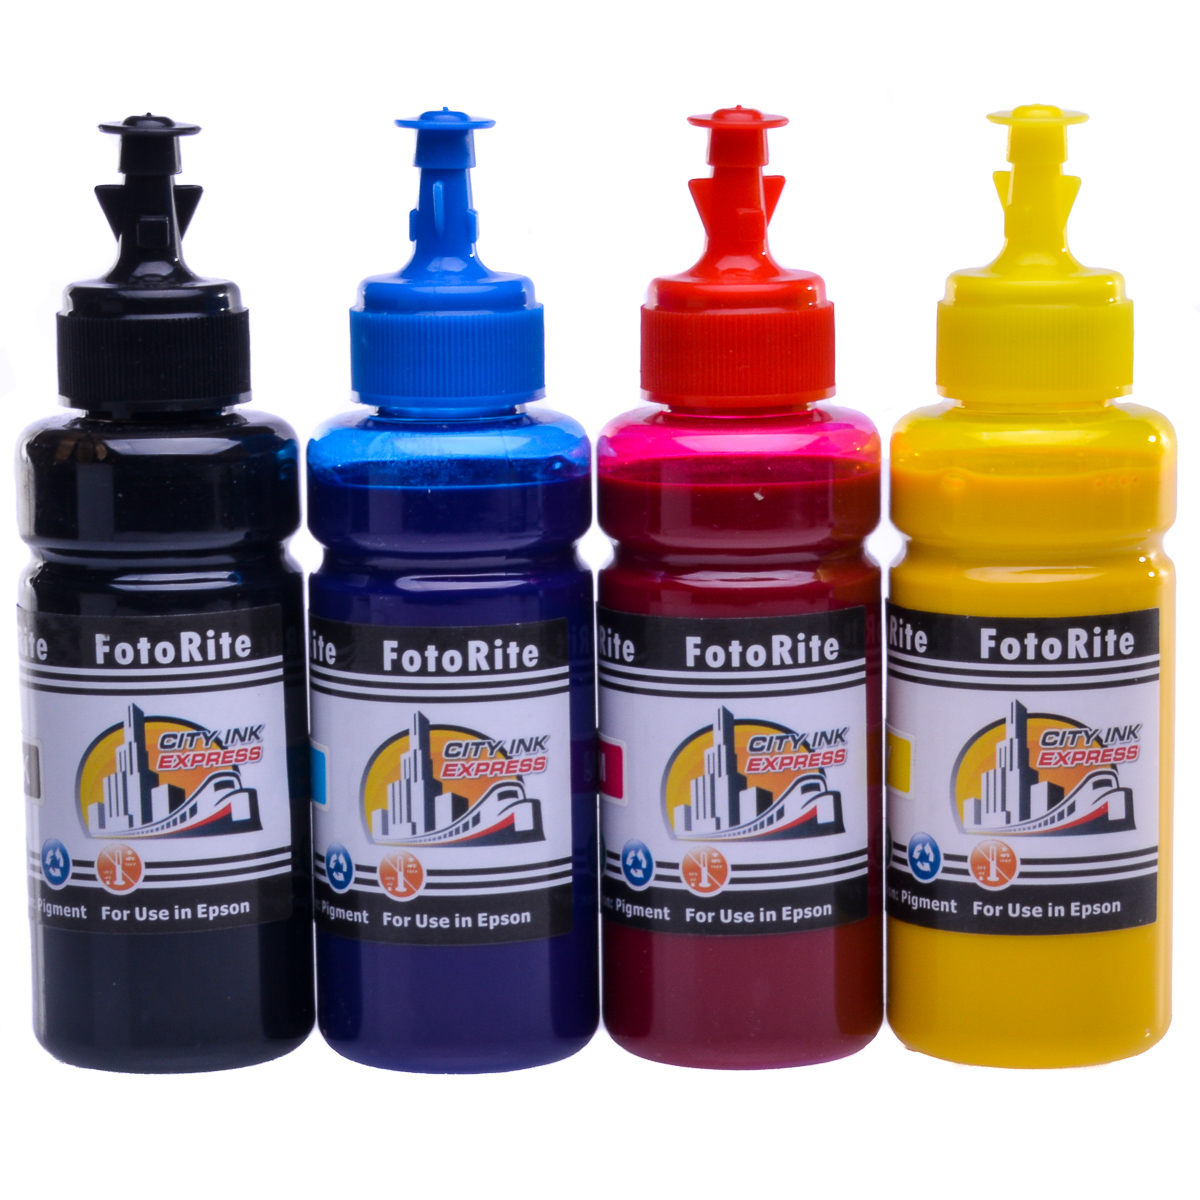 Cheap Multipack pigment ink refill replaces Epson Stylus BX925FWD